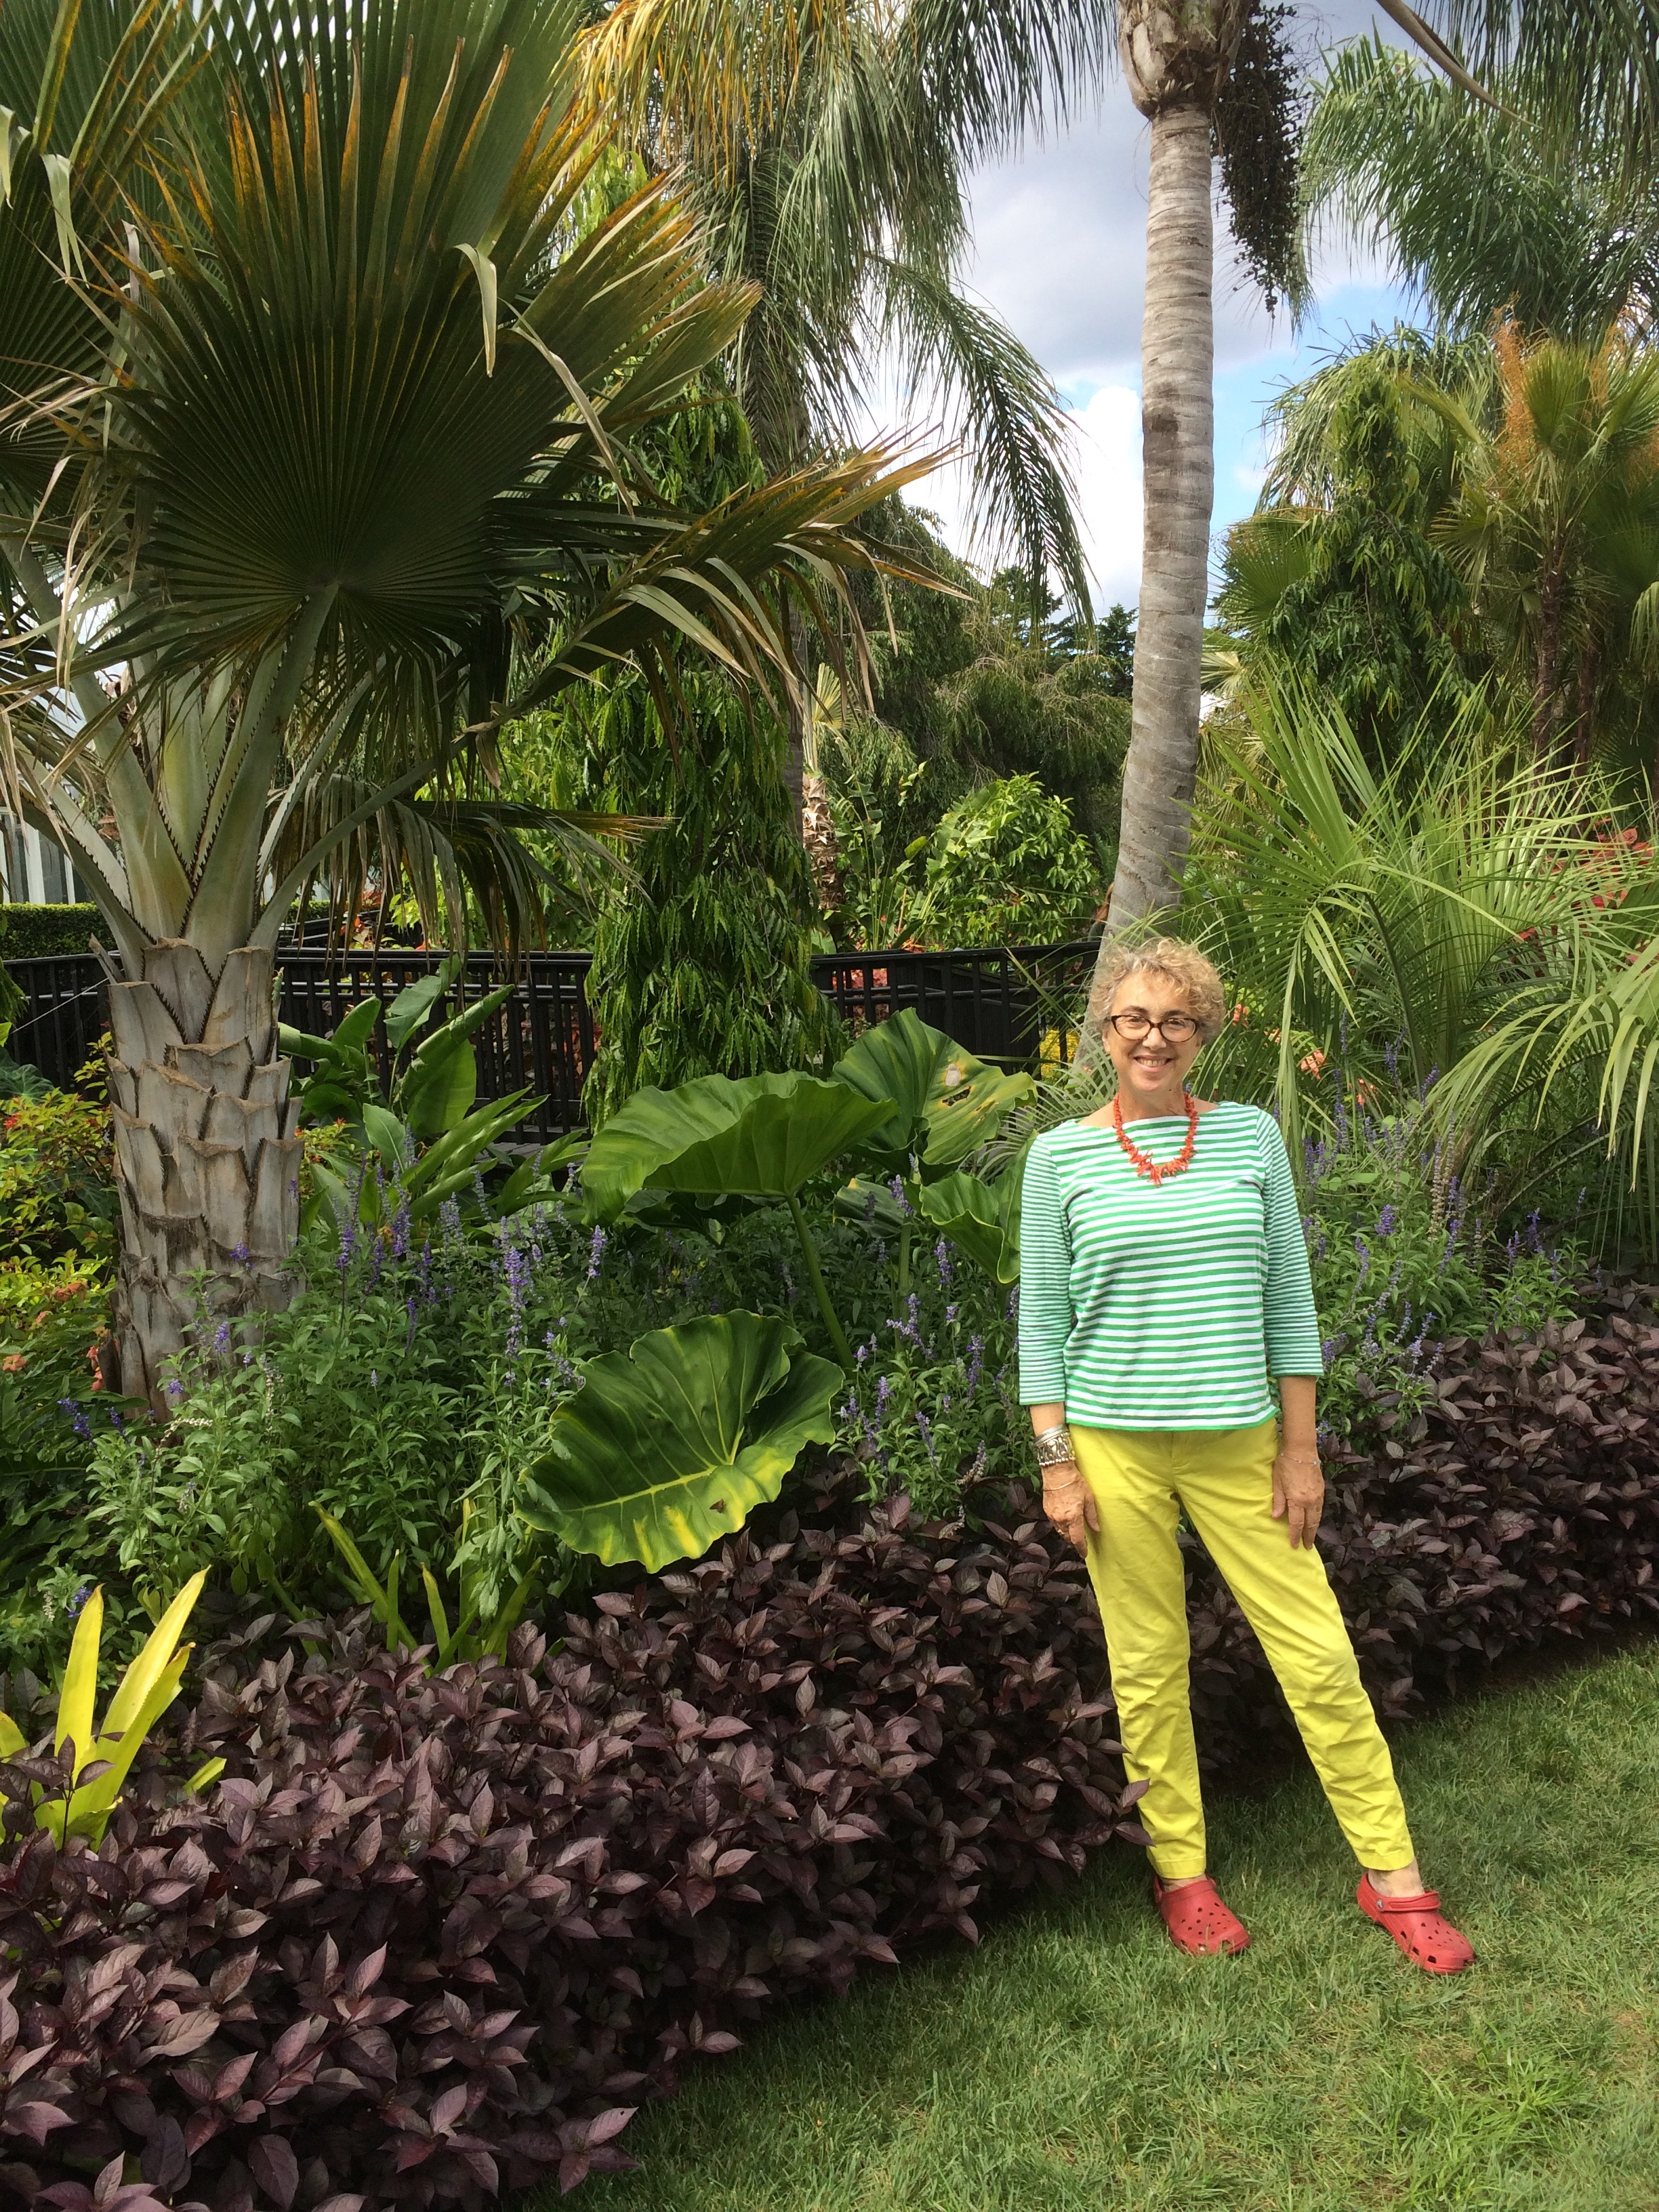 Posing with palms, philodendrons and bromeliads: Burle Marx would like my colors!